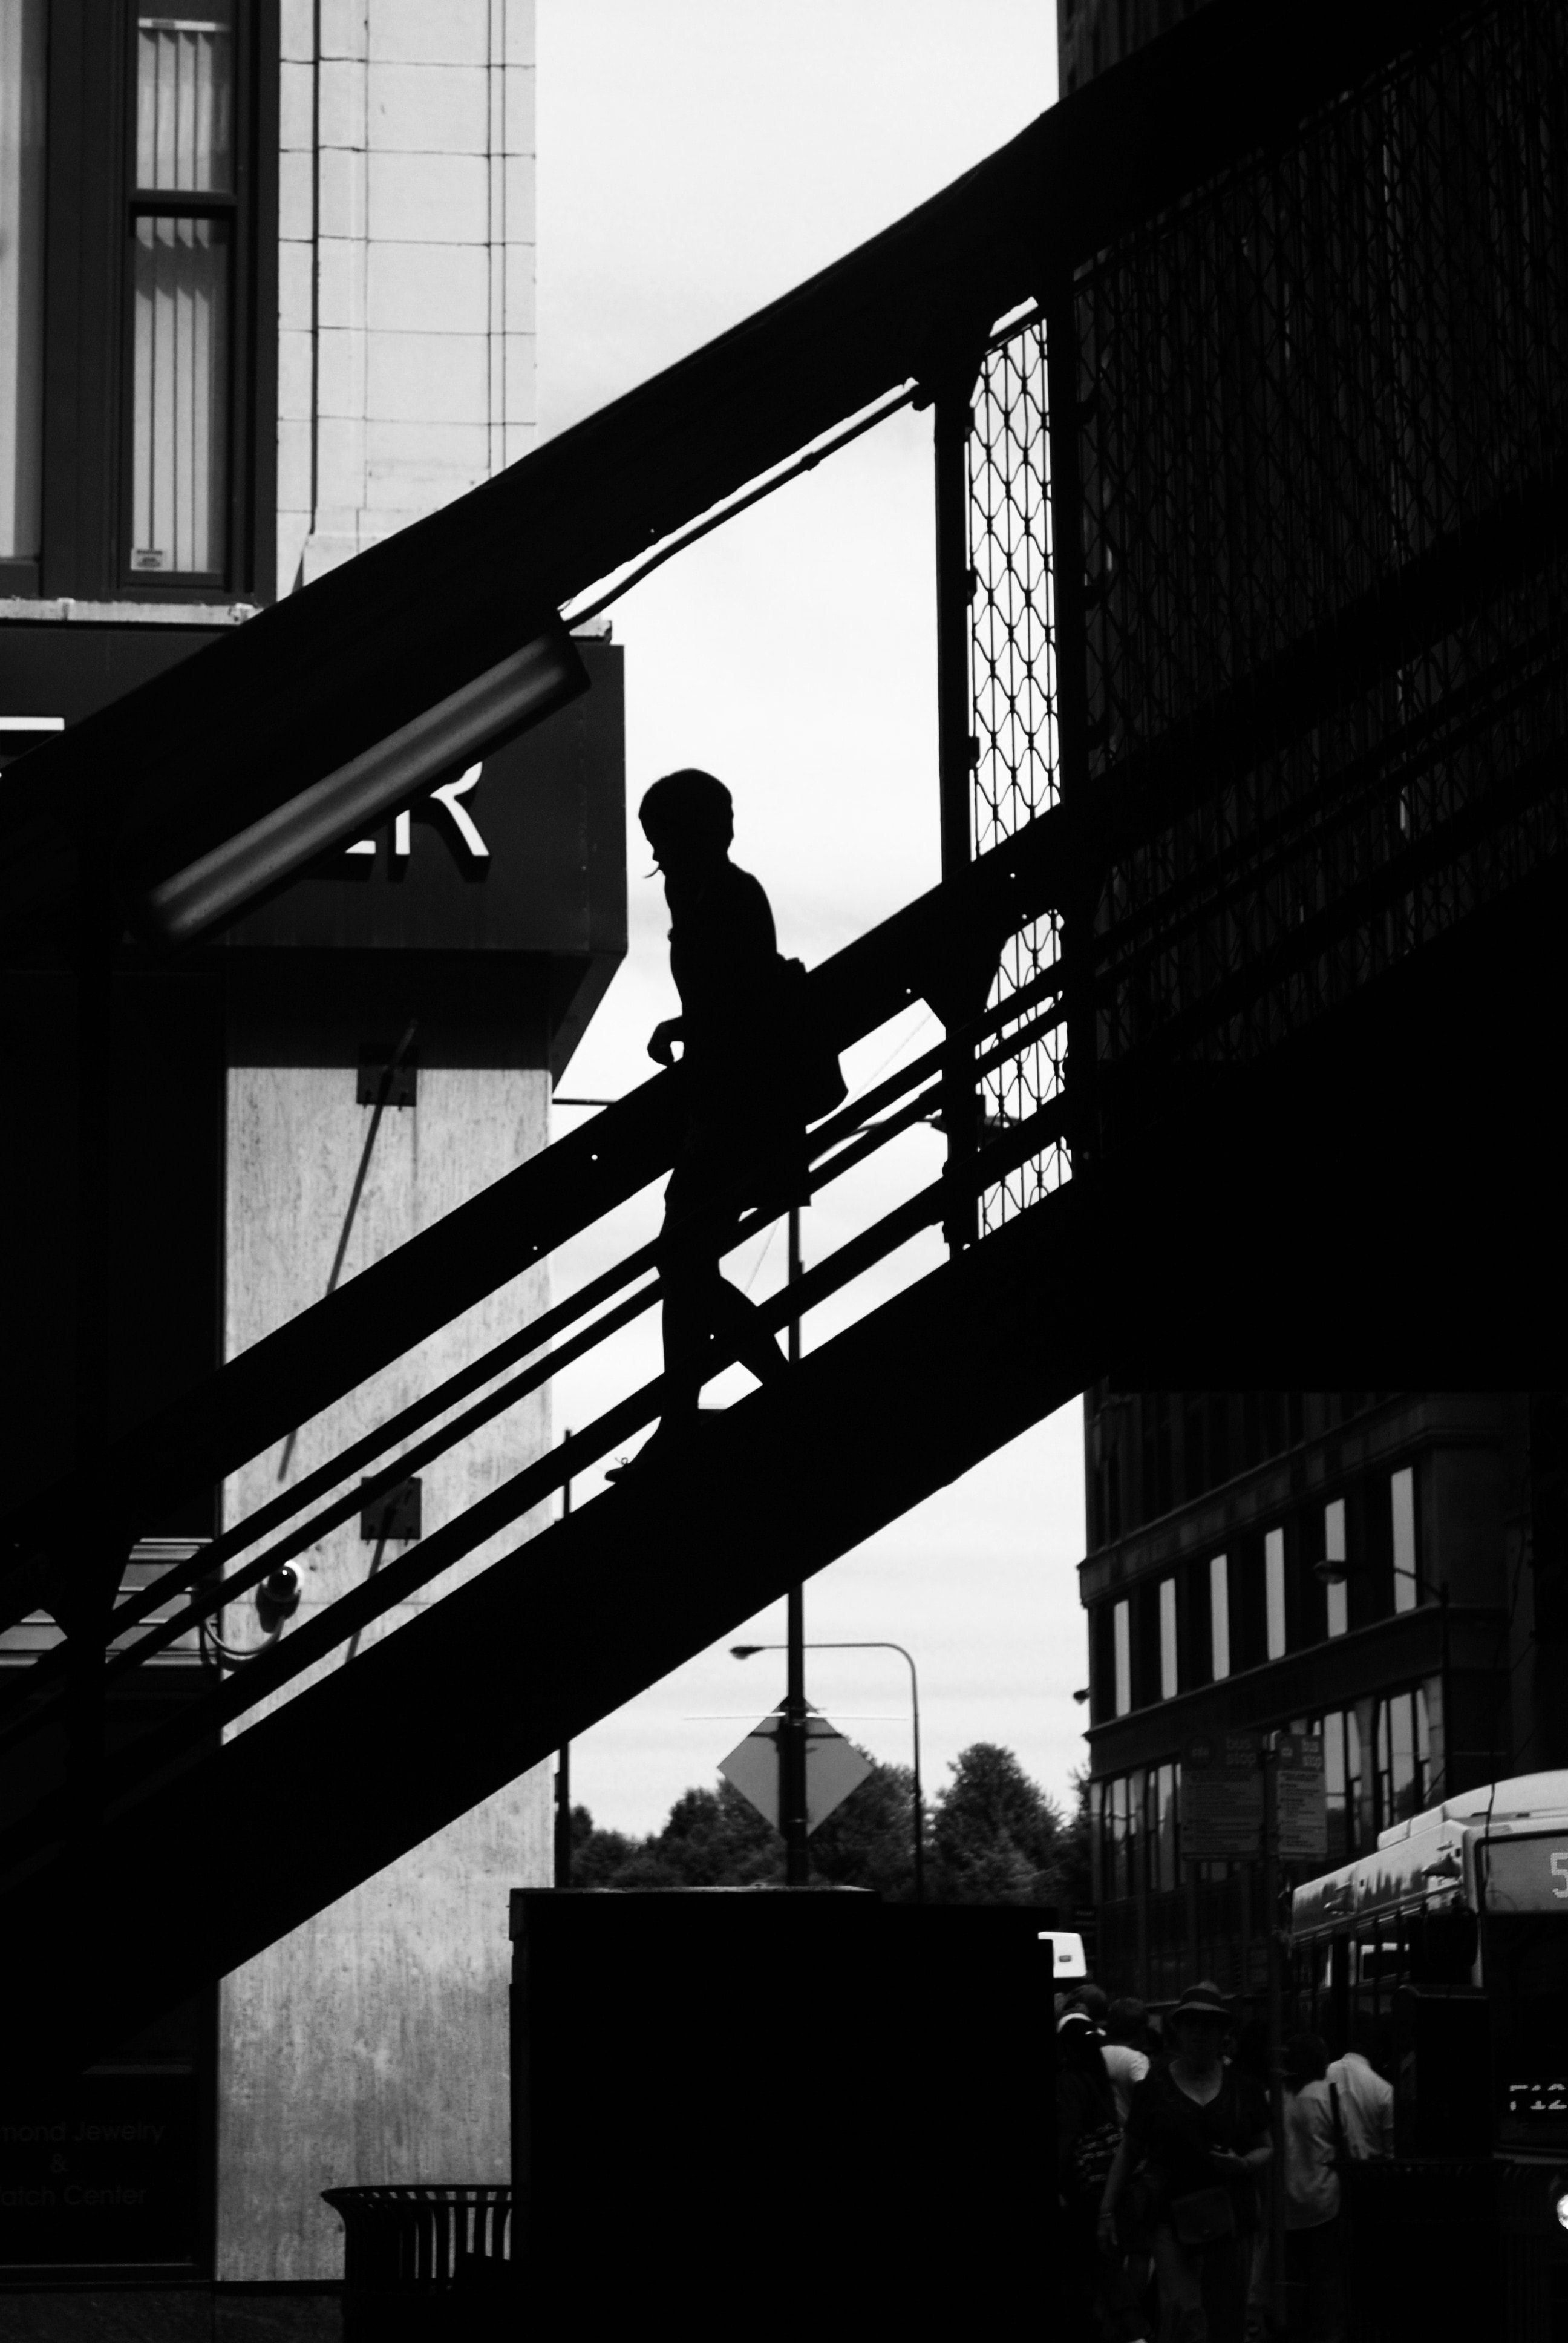 A silhouette shot of a woman walking down a staircase in Chicago.